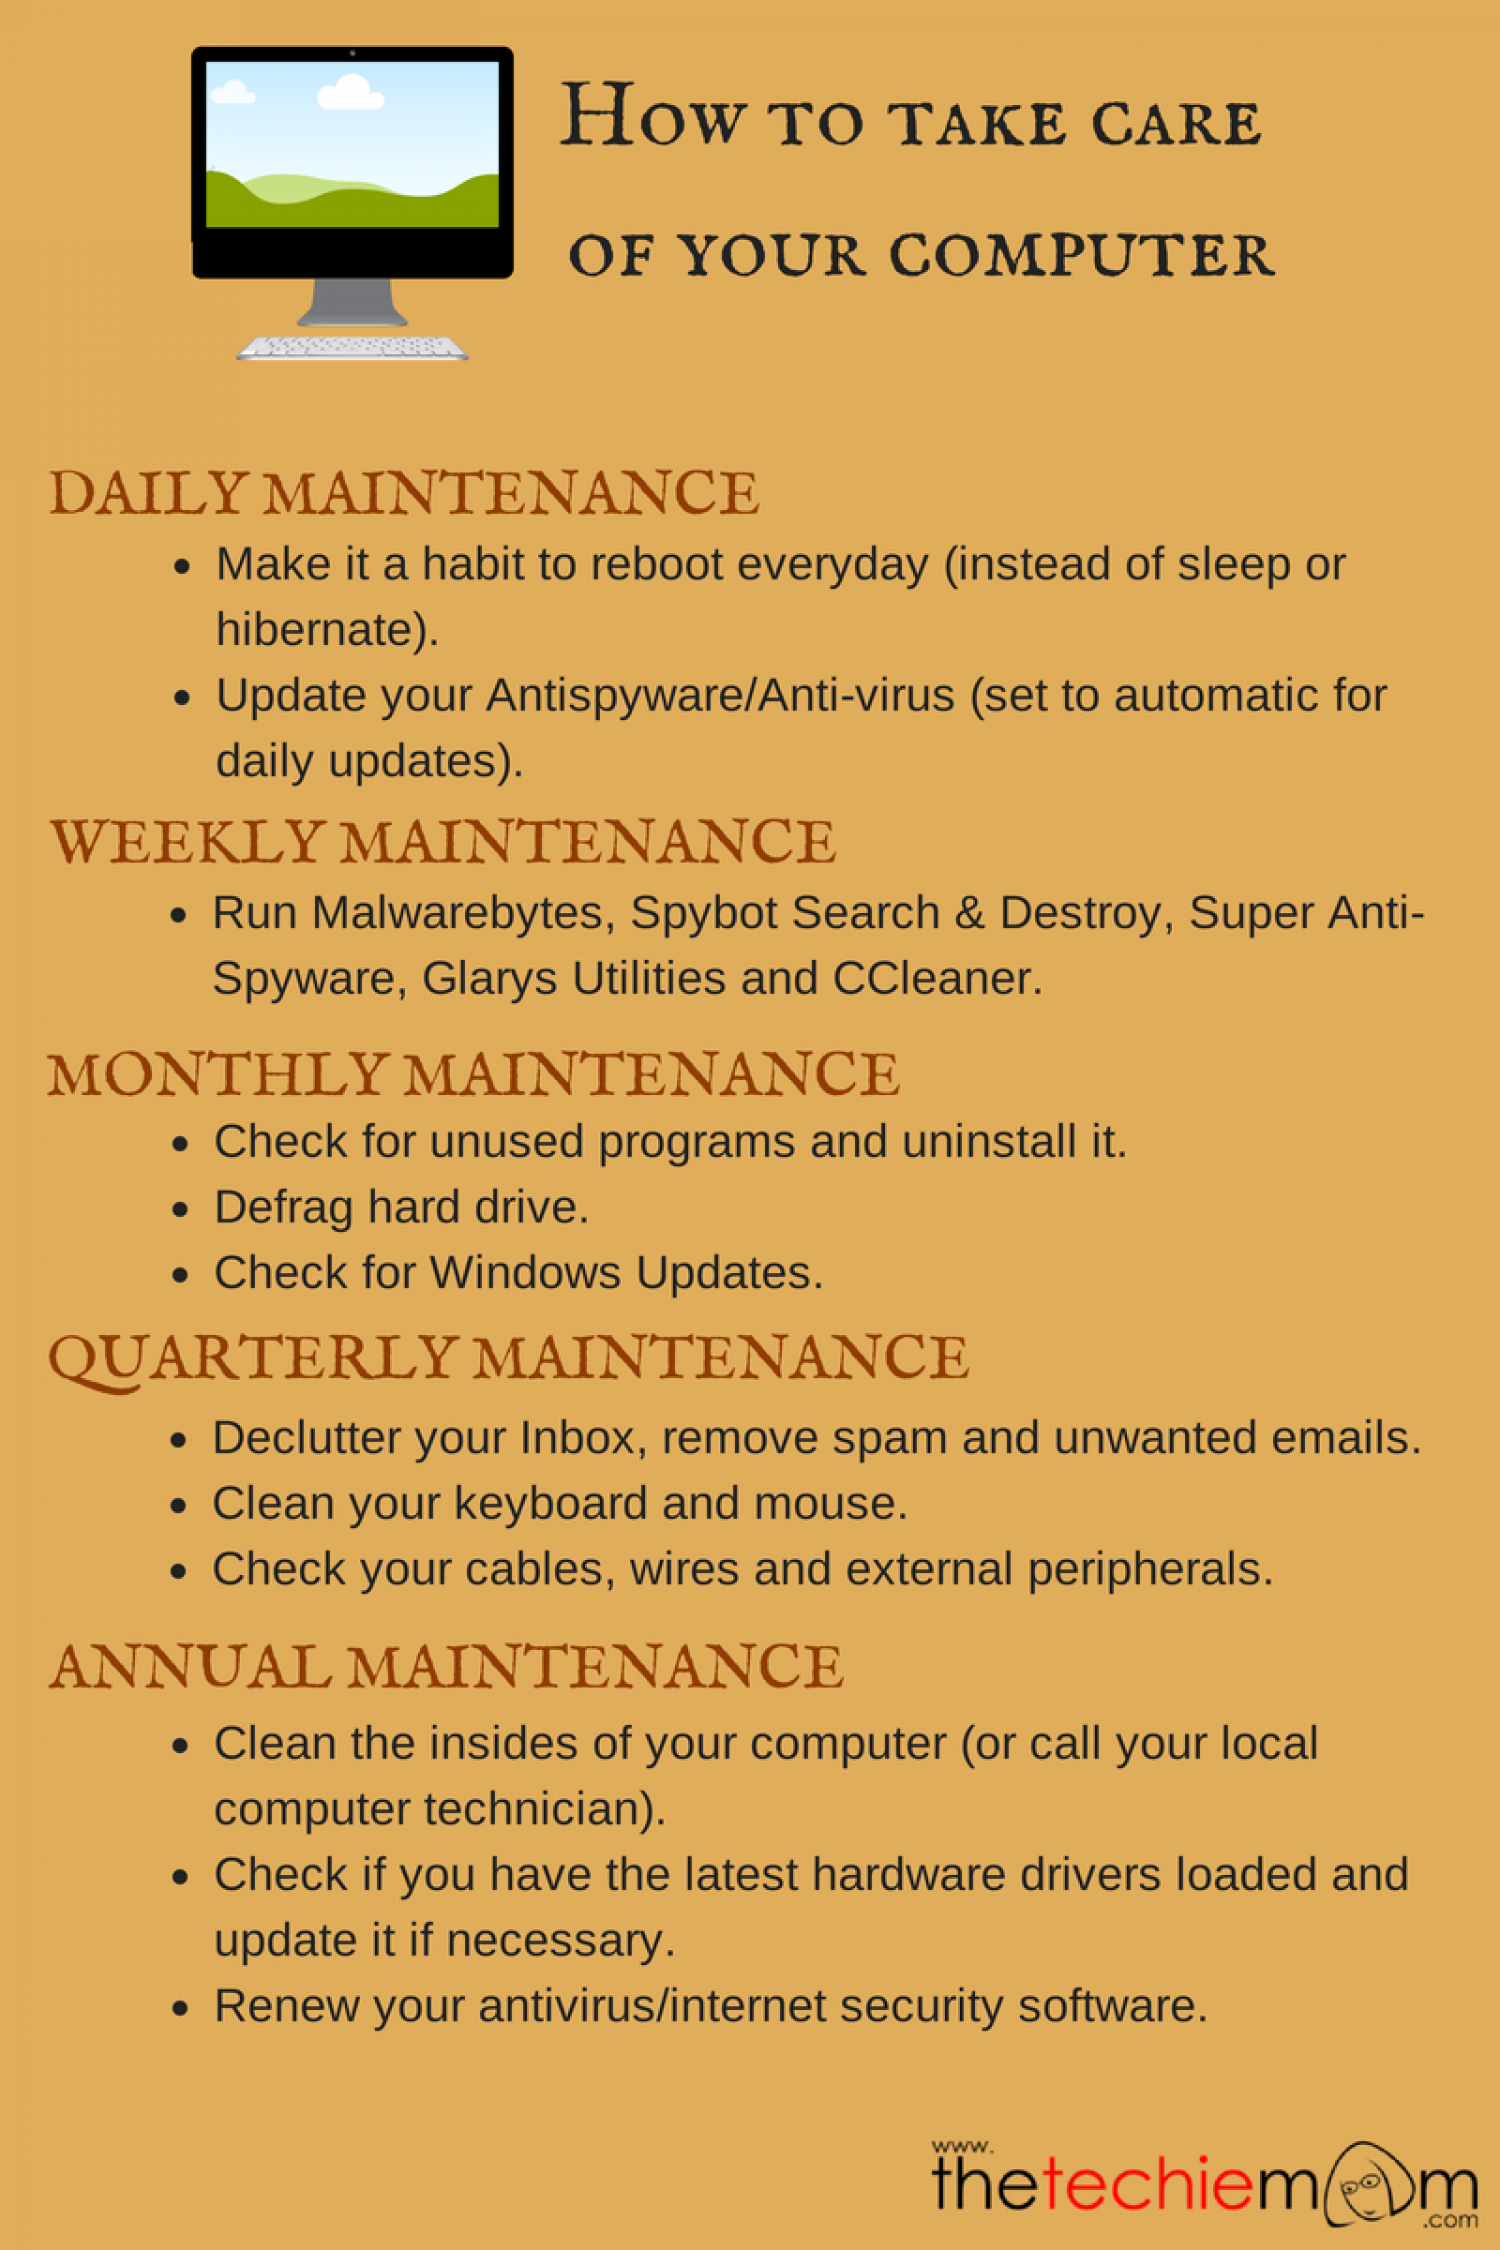 How To Take Care Of Your Computer Infographic